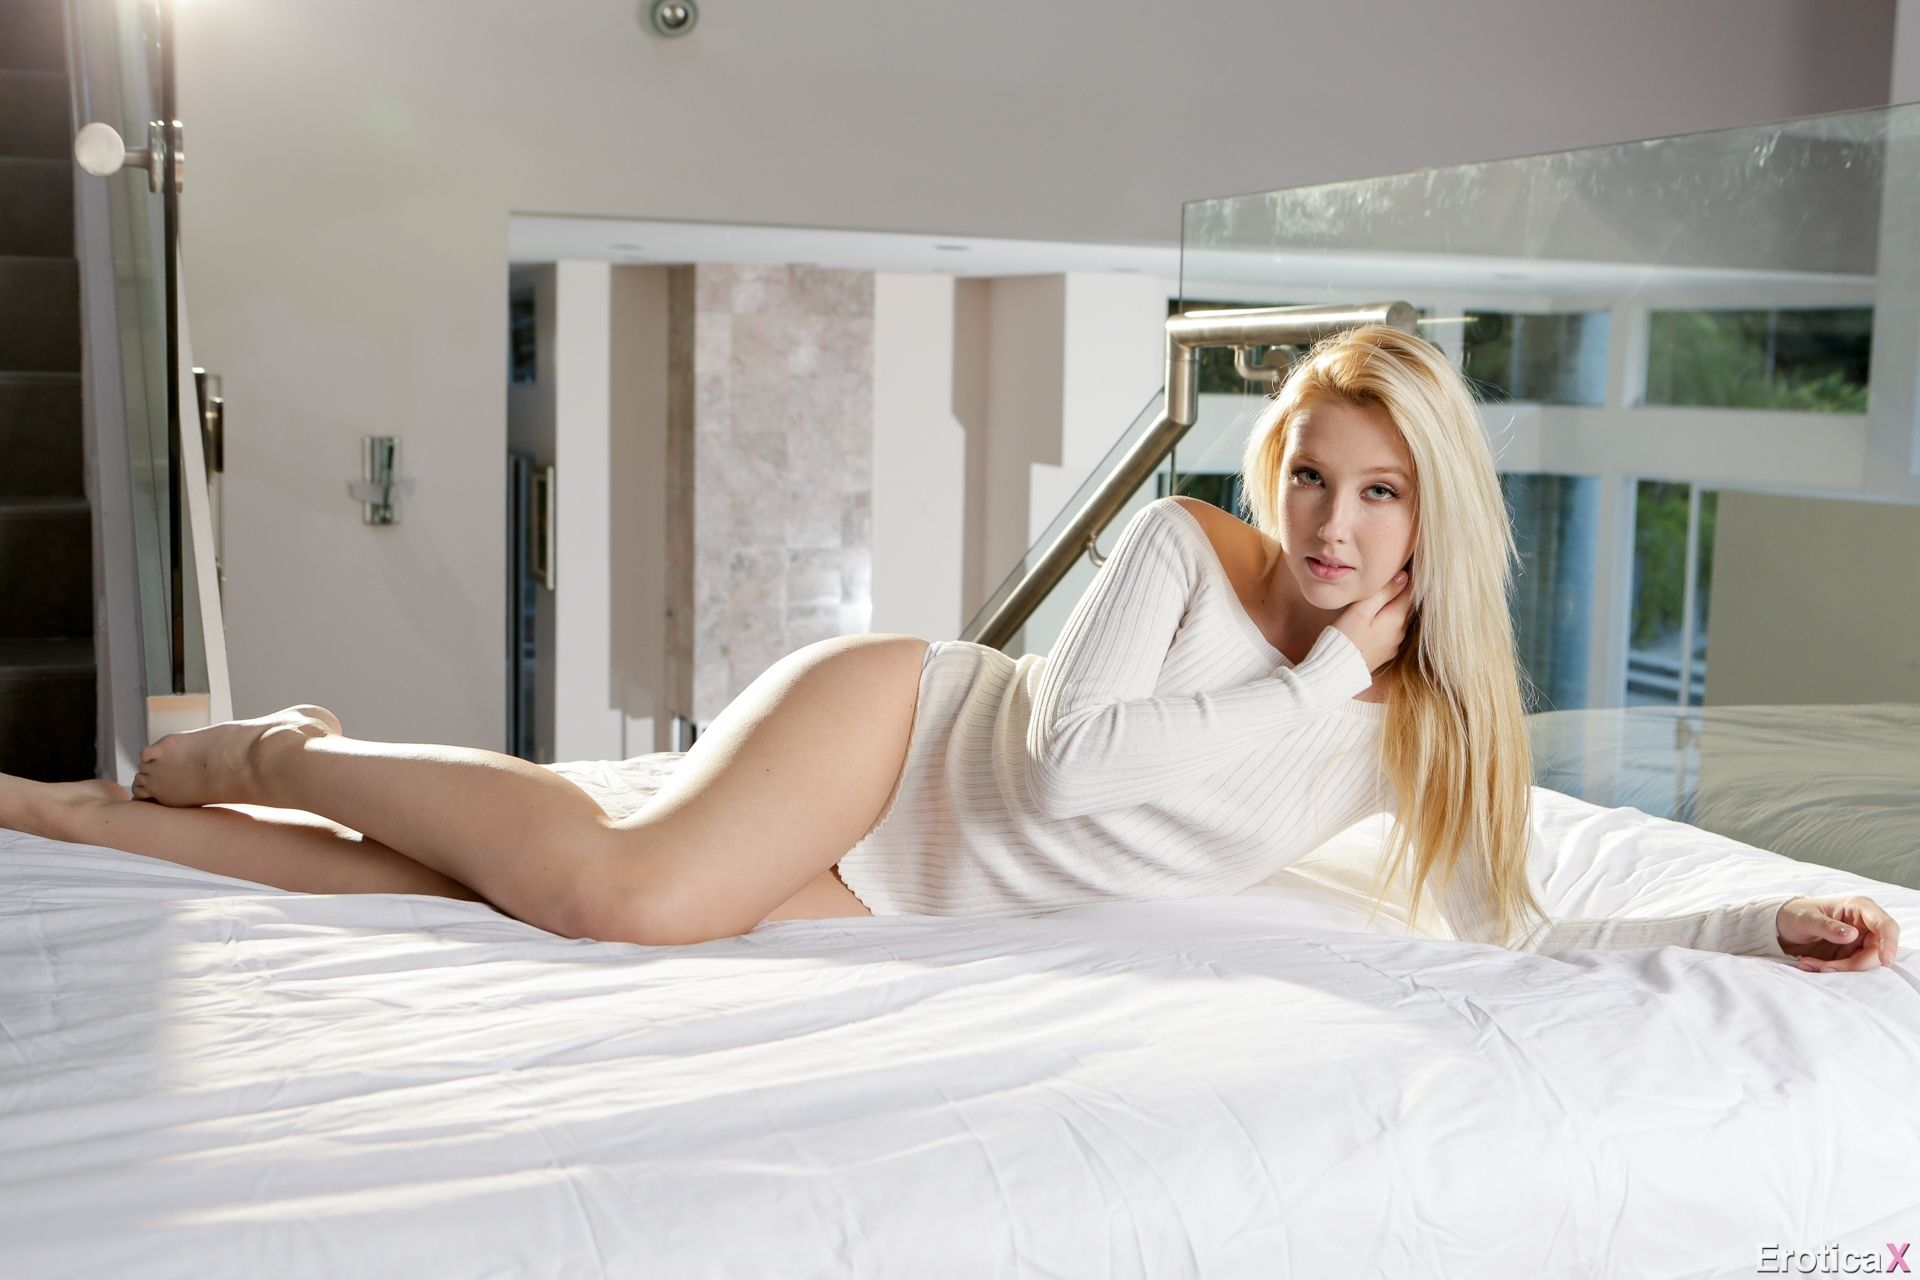 Ass Samantha Rone nudes (65 foto and video), Topless, Paparazzi, Twitter, braless 2006